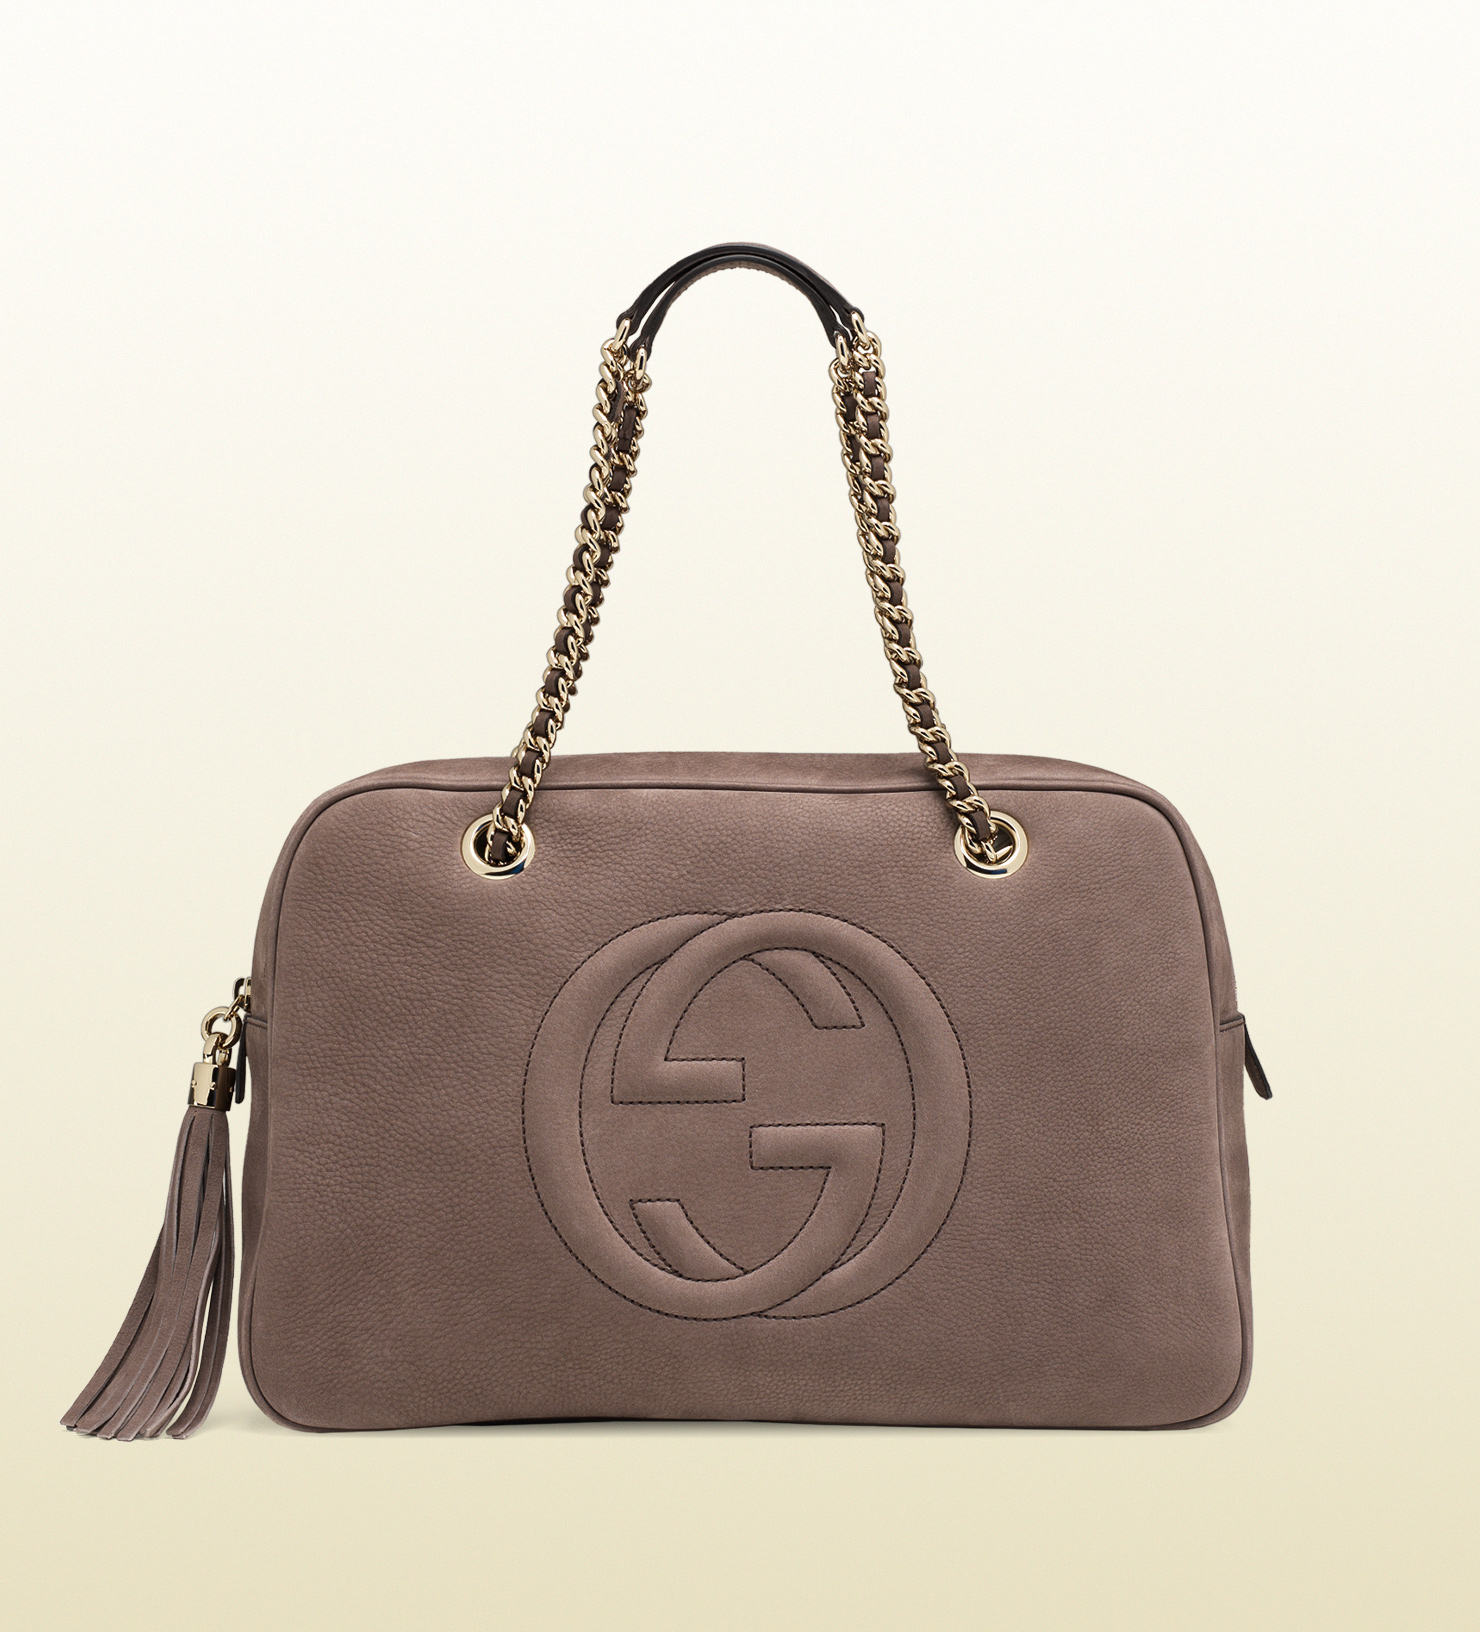 gucci soho nubuck leather chain shoulder bag in gray lyst. Black Bedroom Furniture Sets. Home Design Ideas